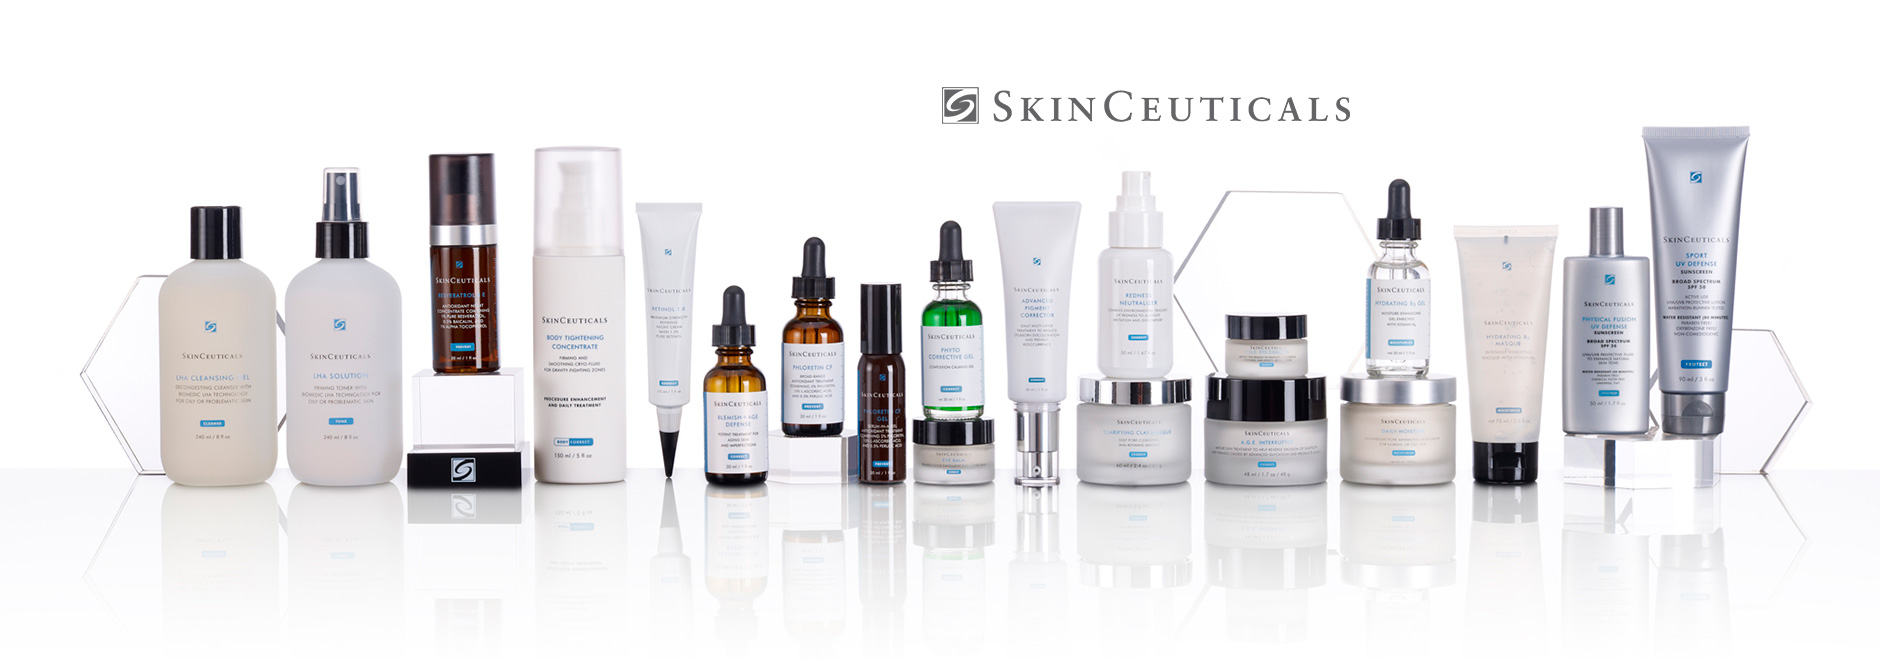 skinceuticals-cape-town